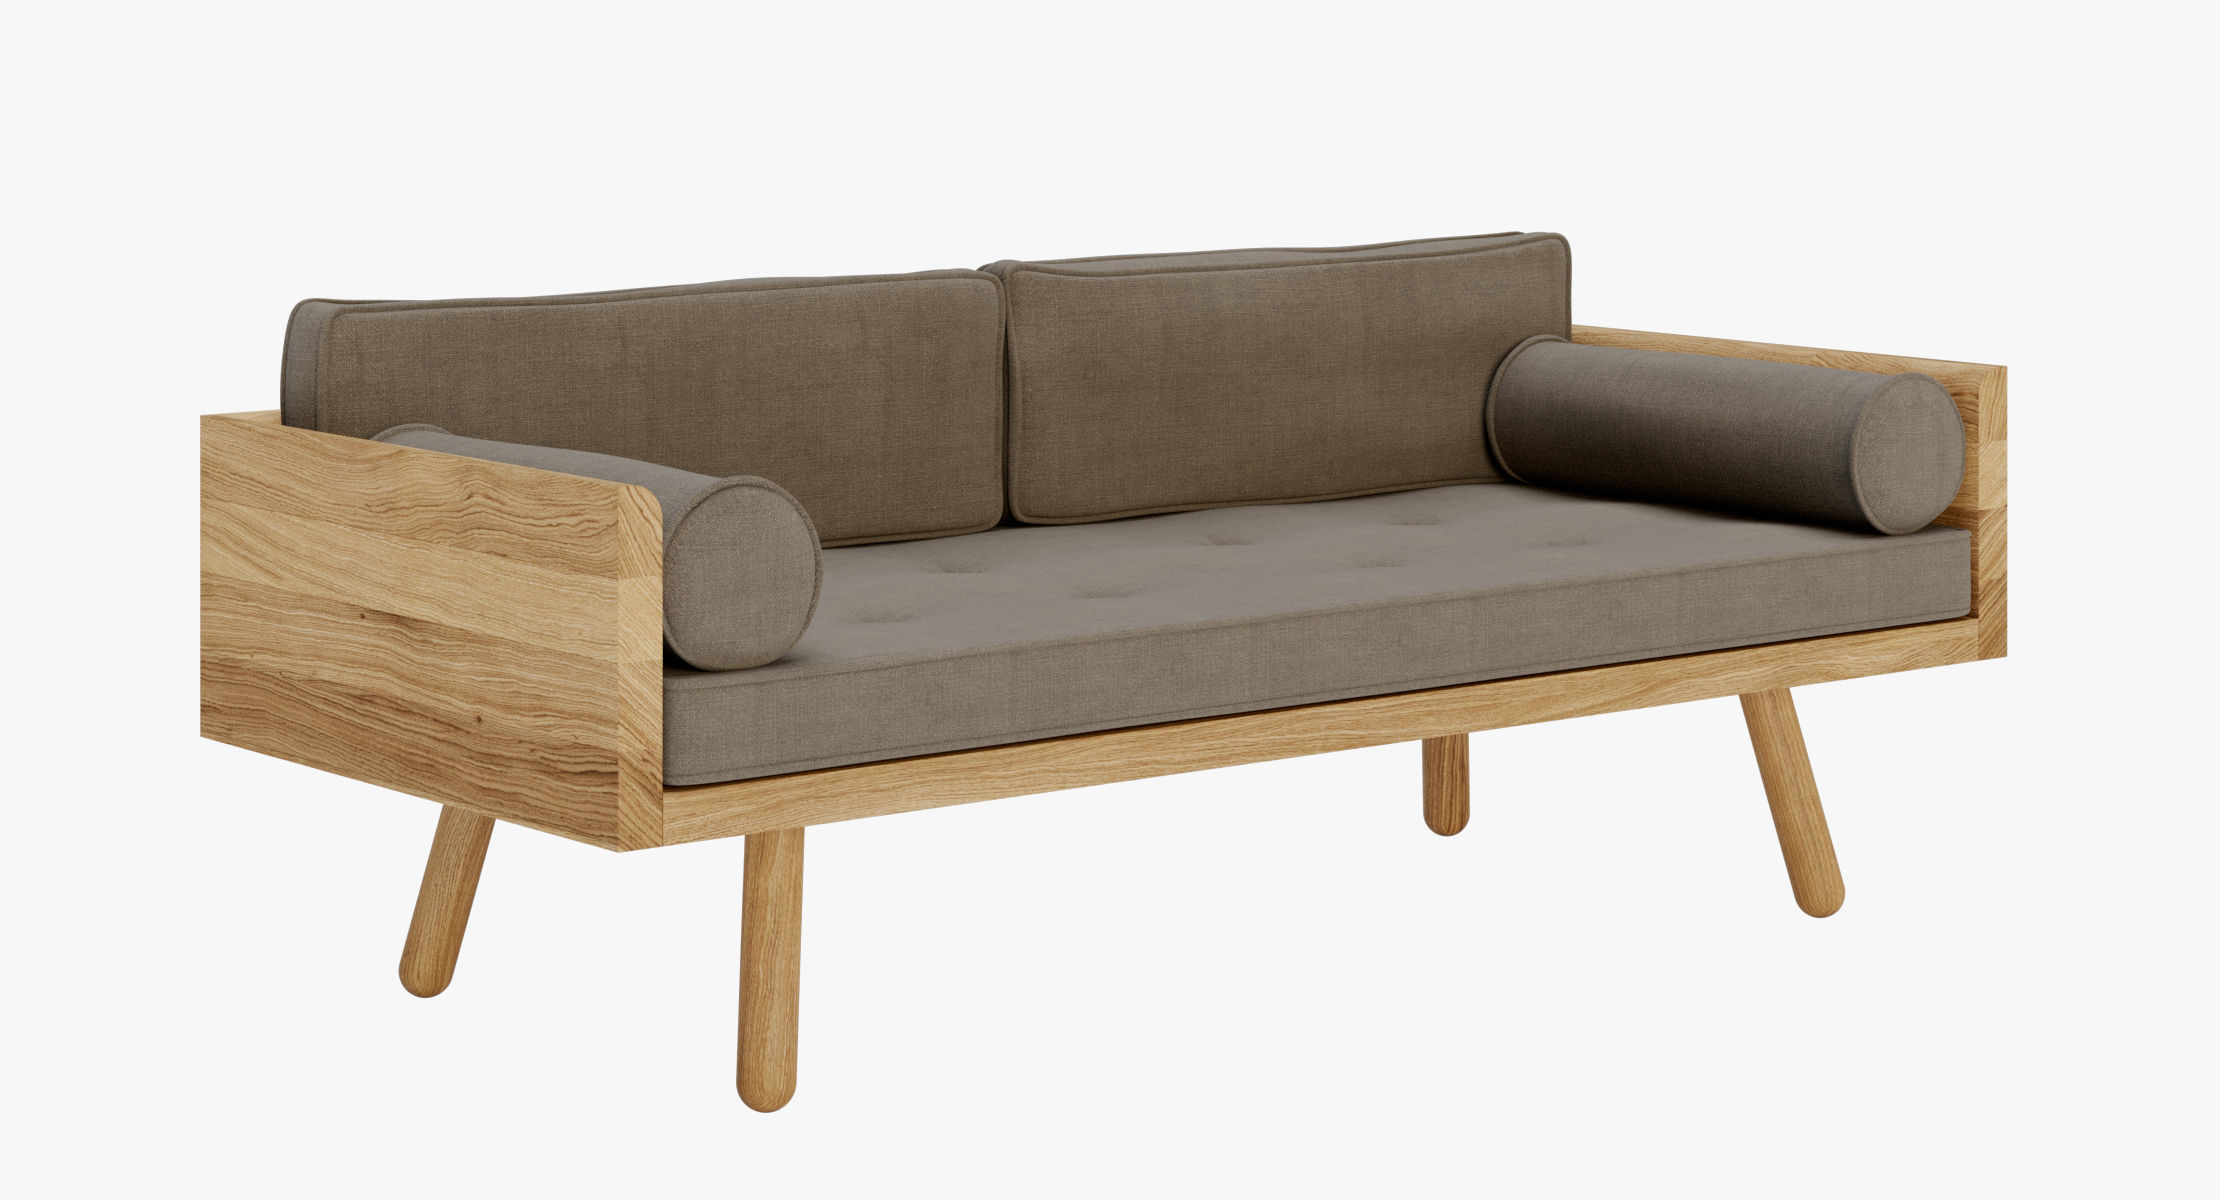 3d Model Furniture Another Country Modern Sofa C4d 2 ~ Another Name For Sofa Bed